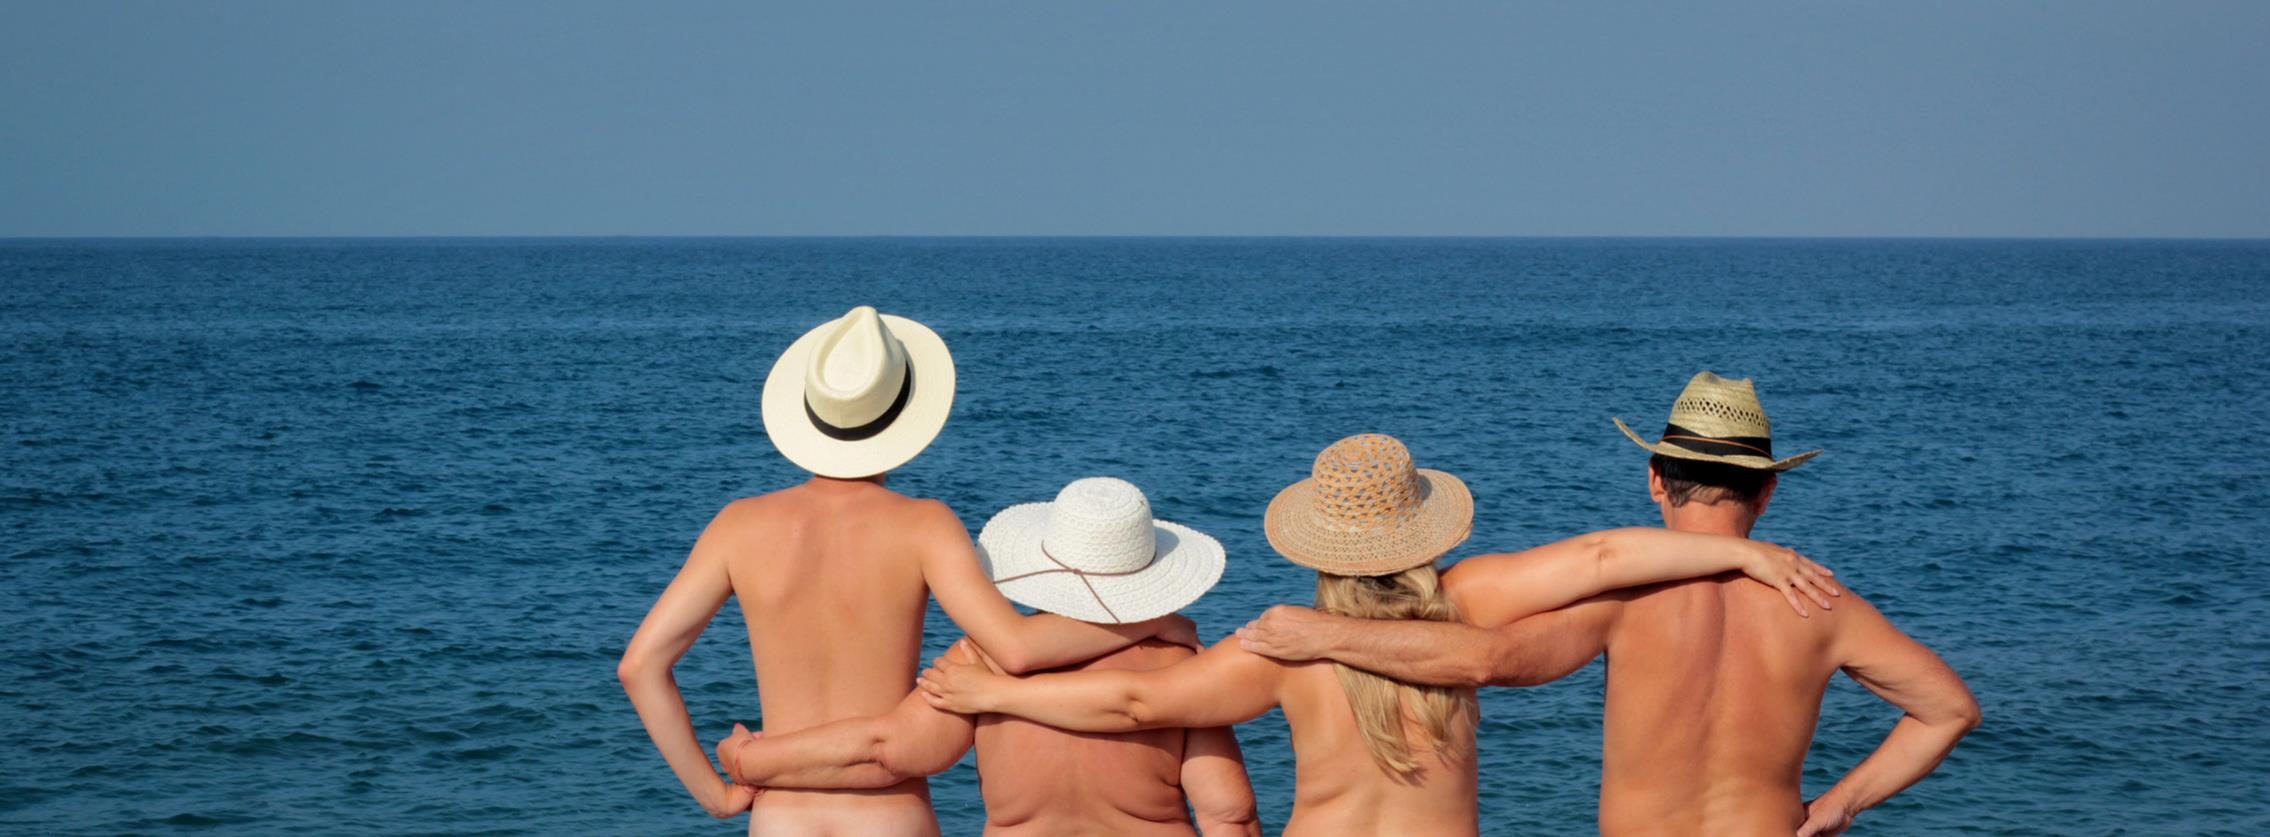 adults fun nudist beach